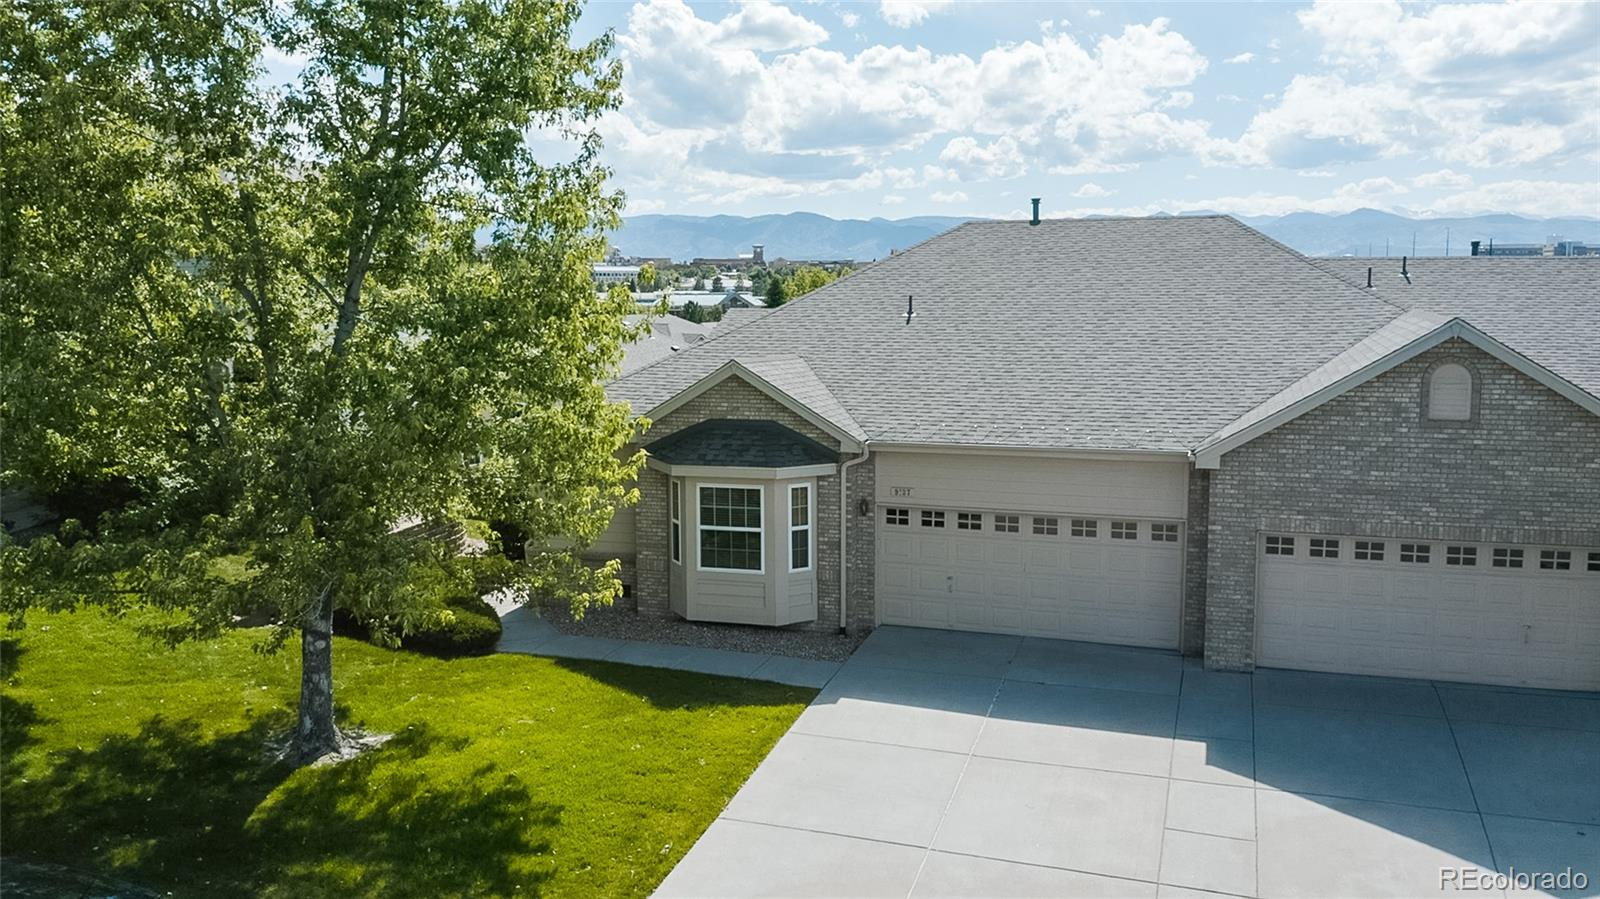 MLS# 4859119 - 27 - 9137 Woodland Drive, Highlands Ranch, CO 80126